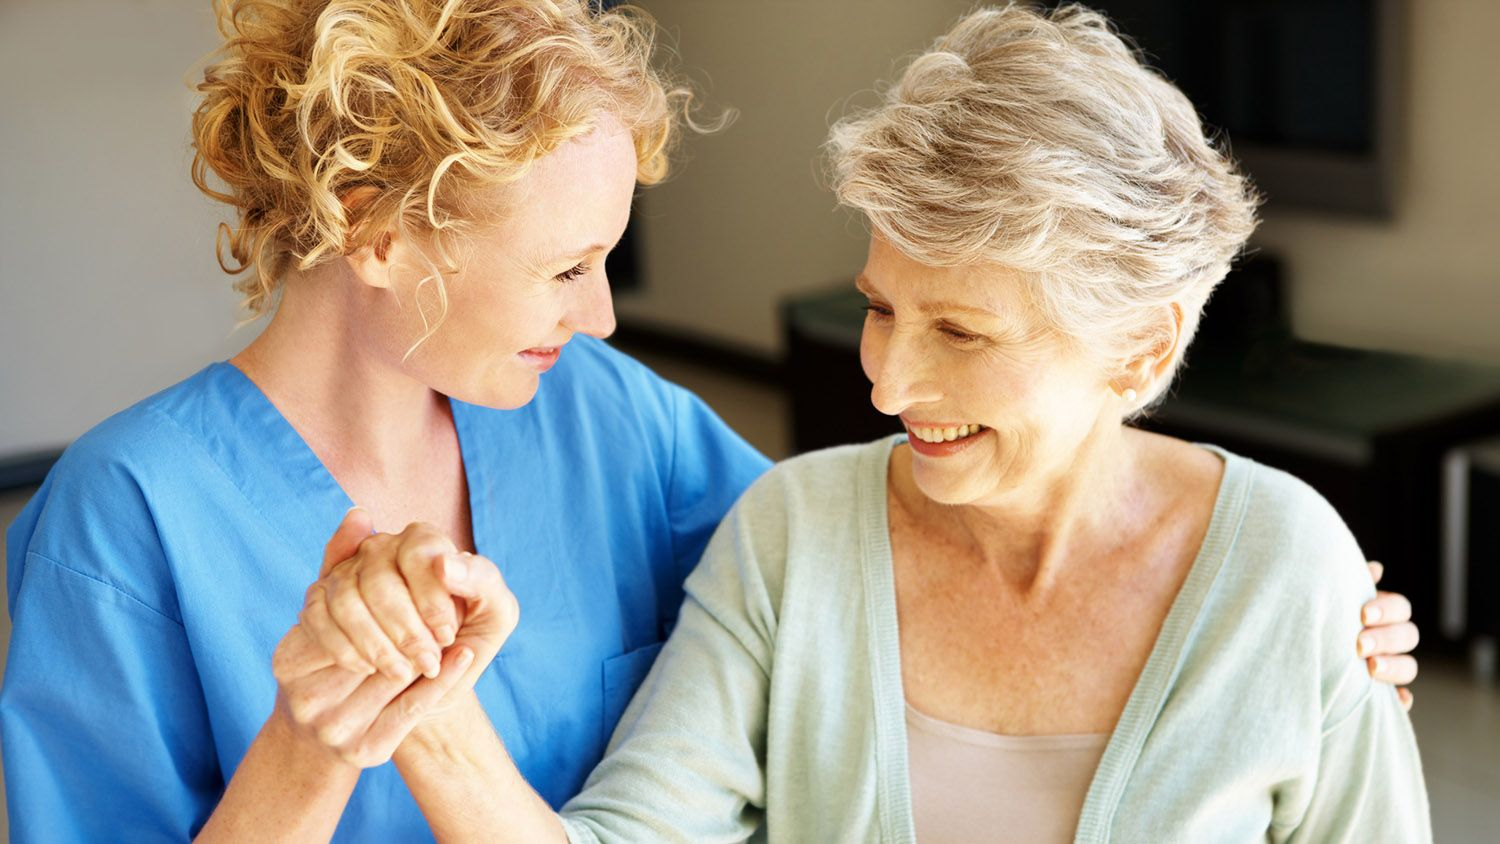 6 Ways to Advocate for Seniors and Provide Support During